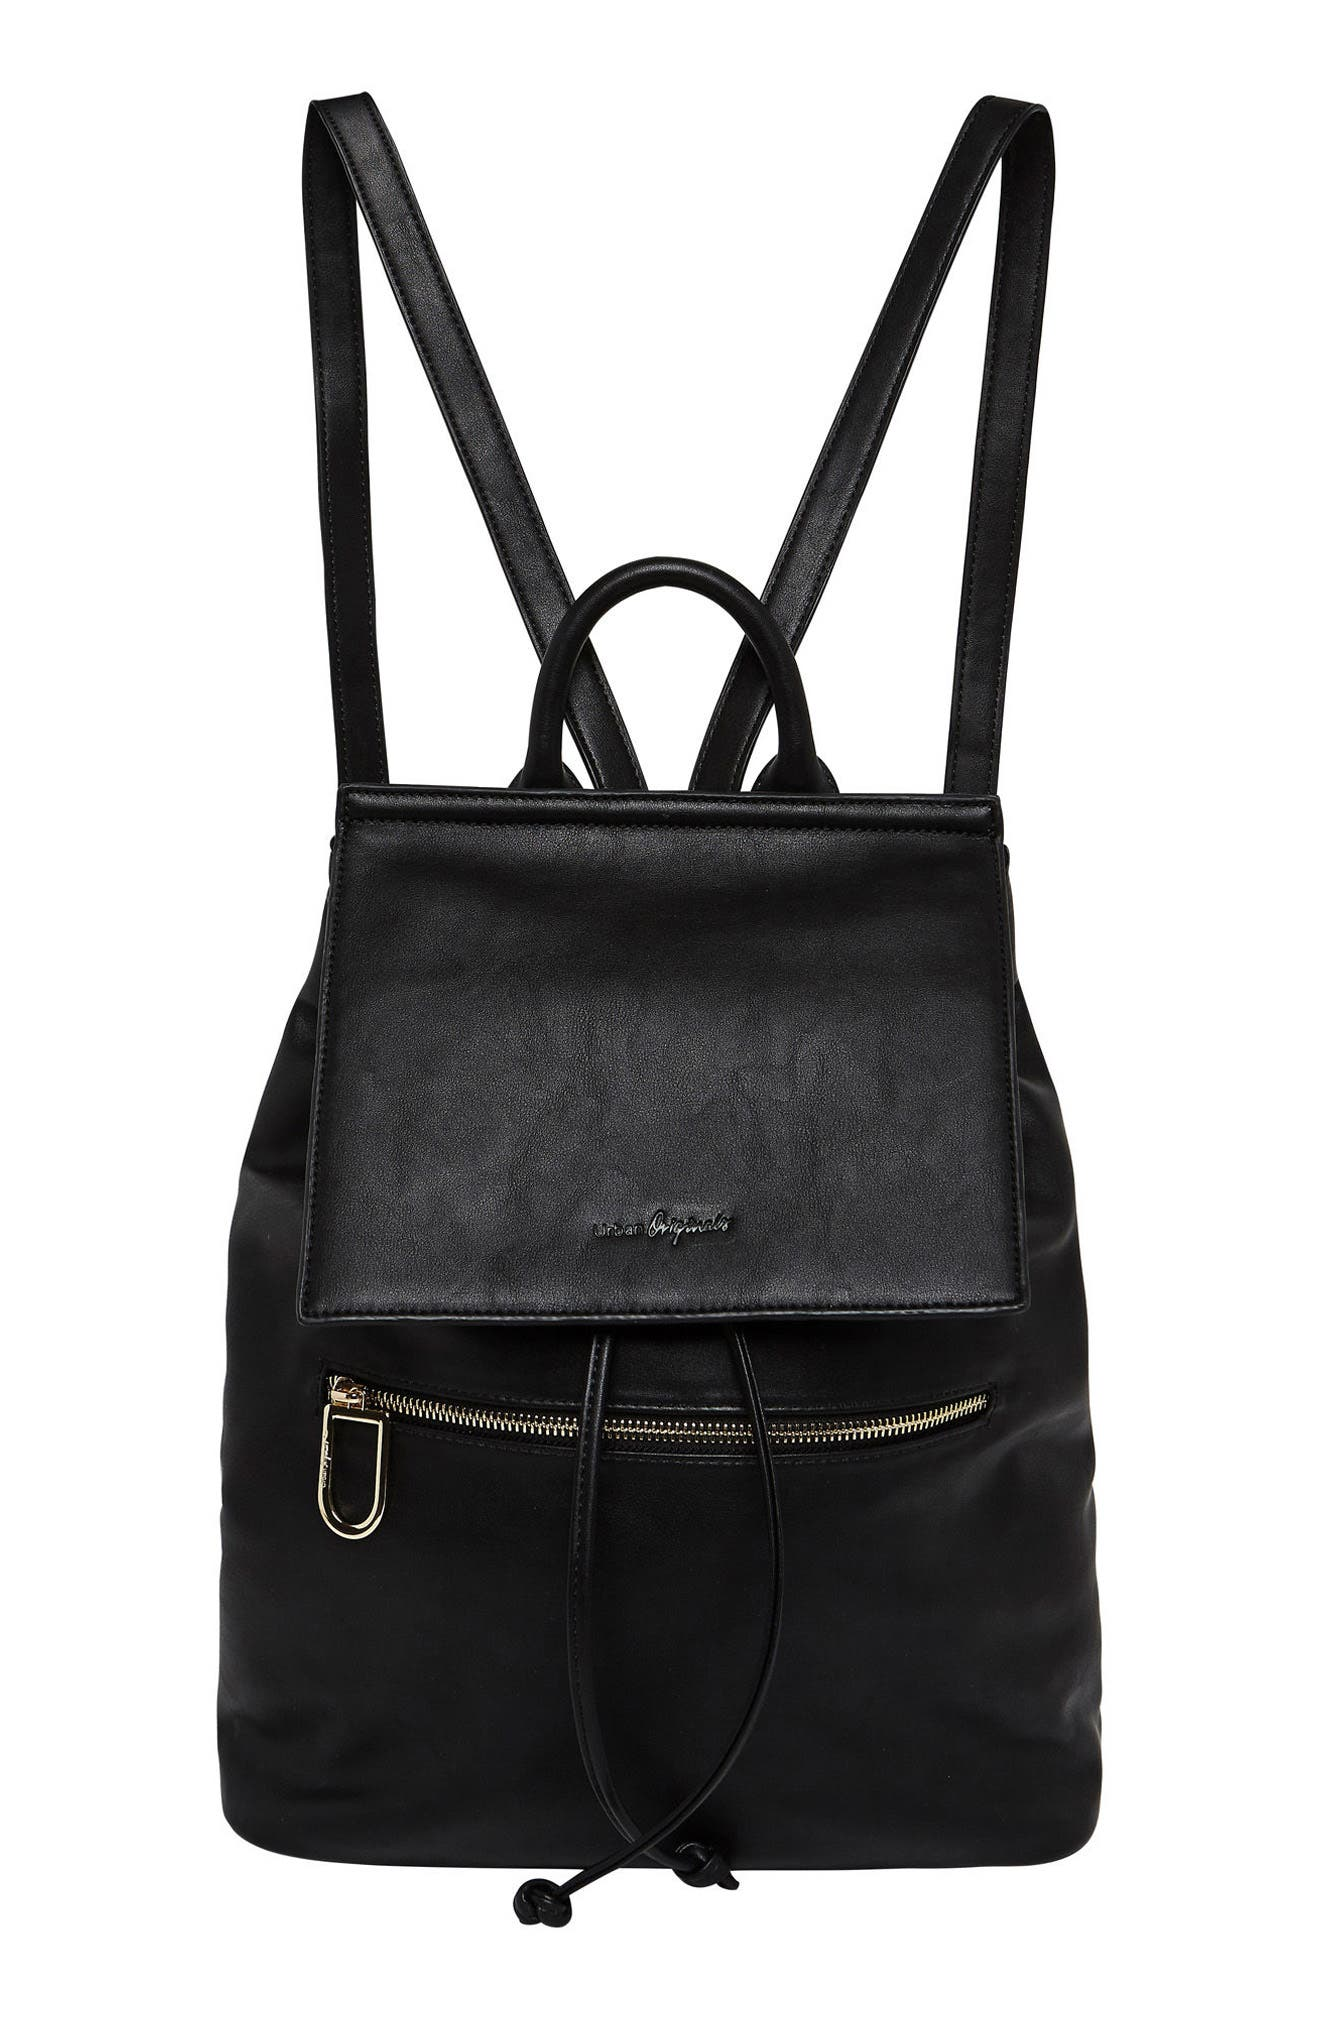 Hide & Seek Vegan Leather Backpack,                             Main thumbnail 1, color,                             Black